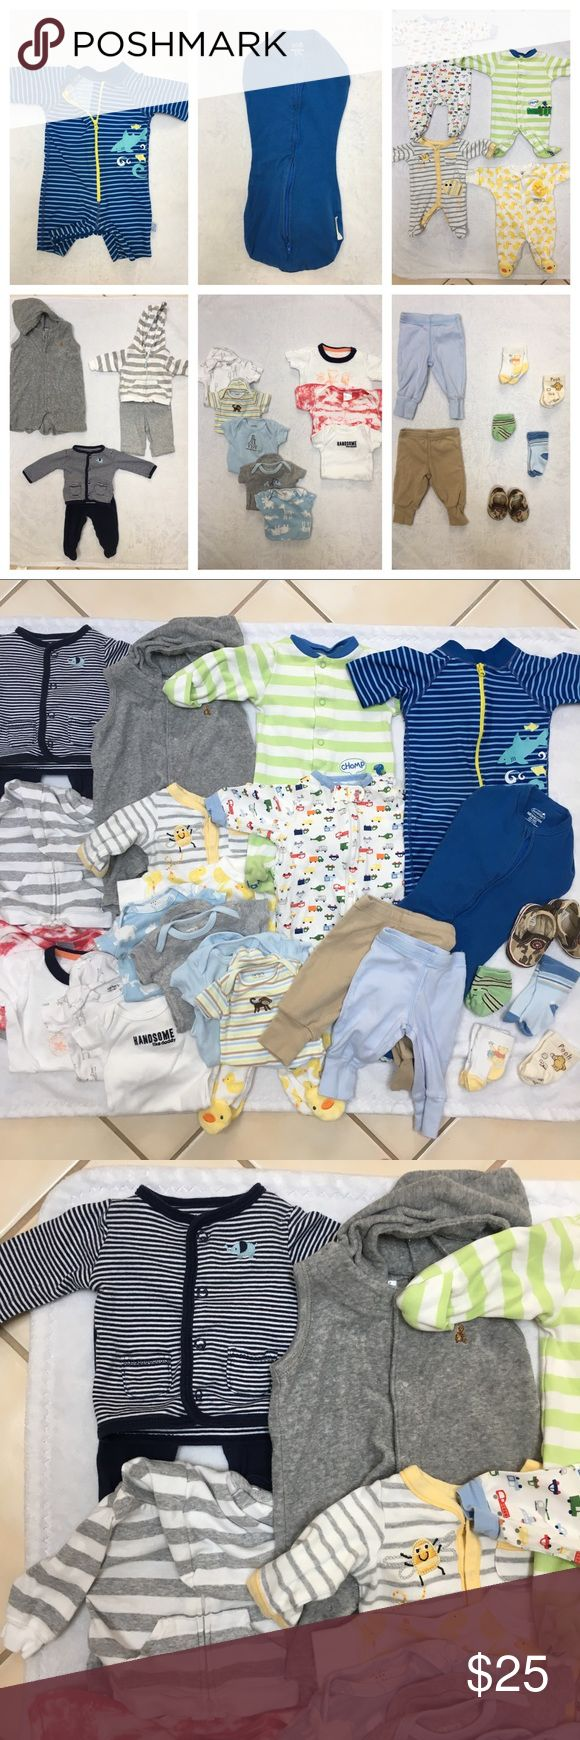 BOYS NEWBORN LOT, 25 pieces, swim outfit included 3 outfits, 4 sets of pajamas, 8 bodysuits, 2 pairs of pants, 1 swim outfit with sun protection, 1 sleep sack, 1 pair of shoes, 4 pairs of socks. Brands include Carters, Baby Gap, Bambini, Cherokee, Babies R Us, Gerber, Summer, and I Play. Worn but in good condition. Pet-free and smoke-free home. Other